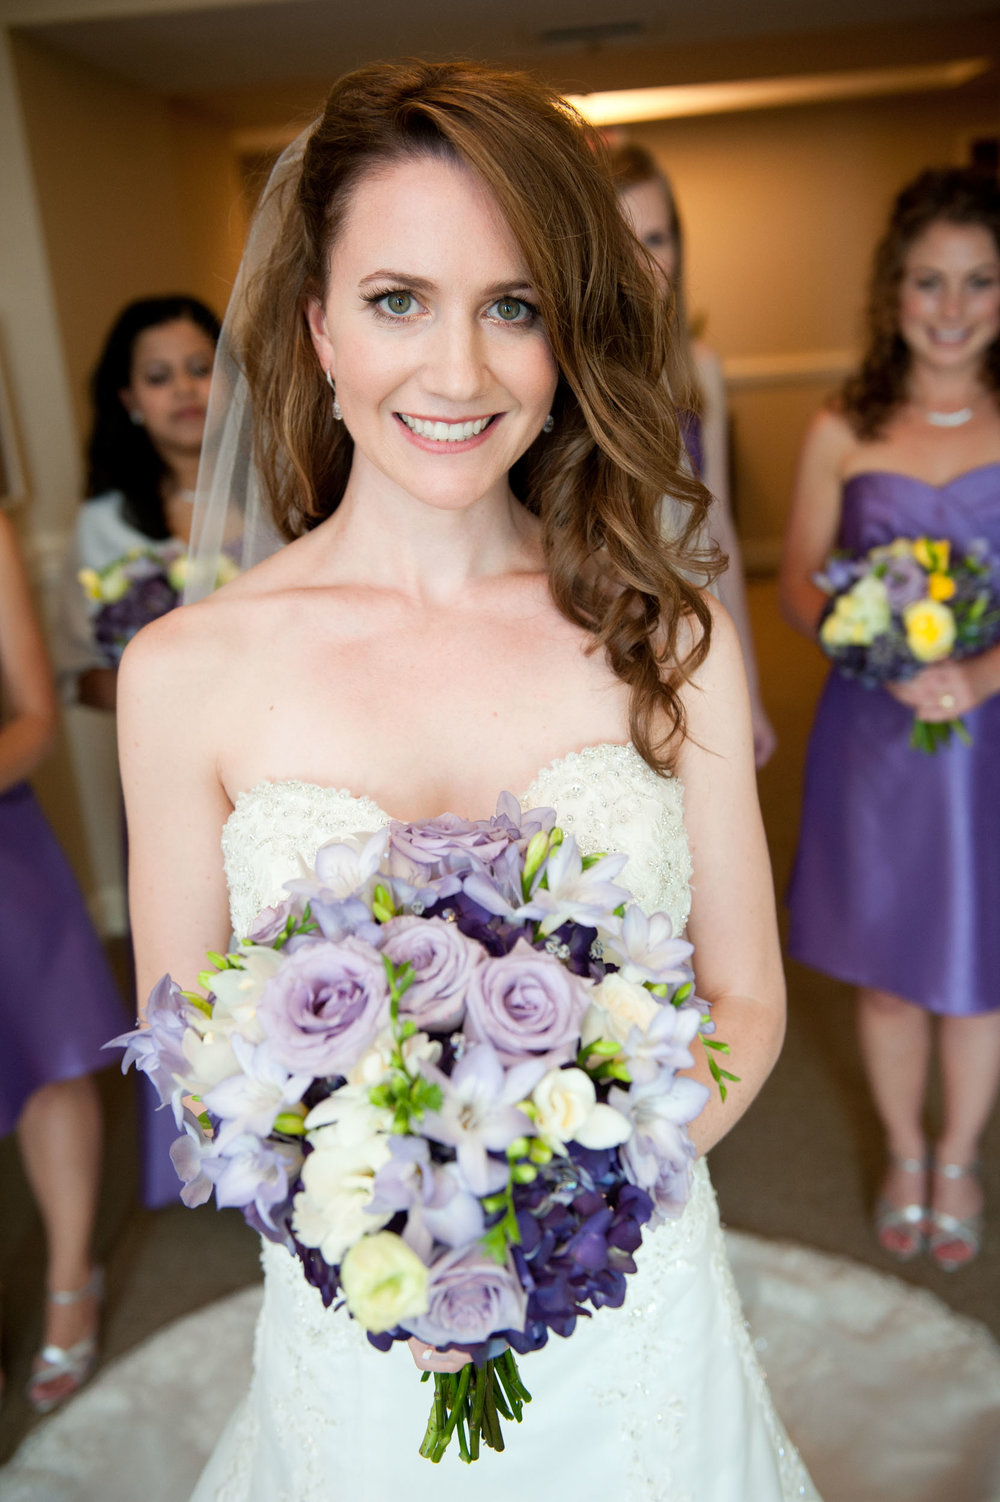 Wedding14Bride_Bridesmaids-2.jpg